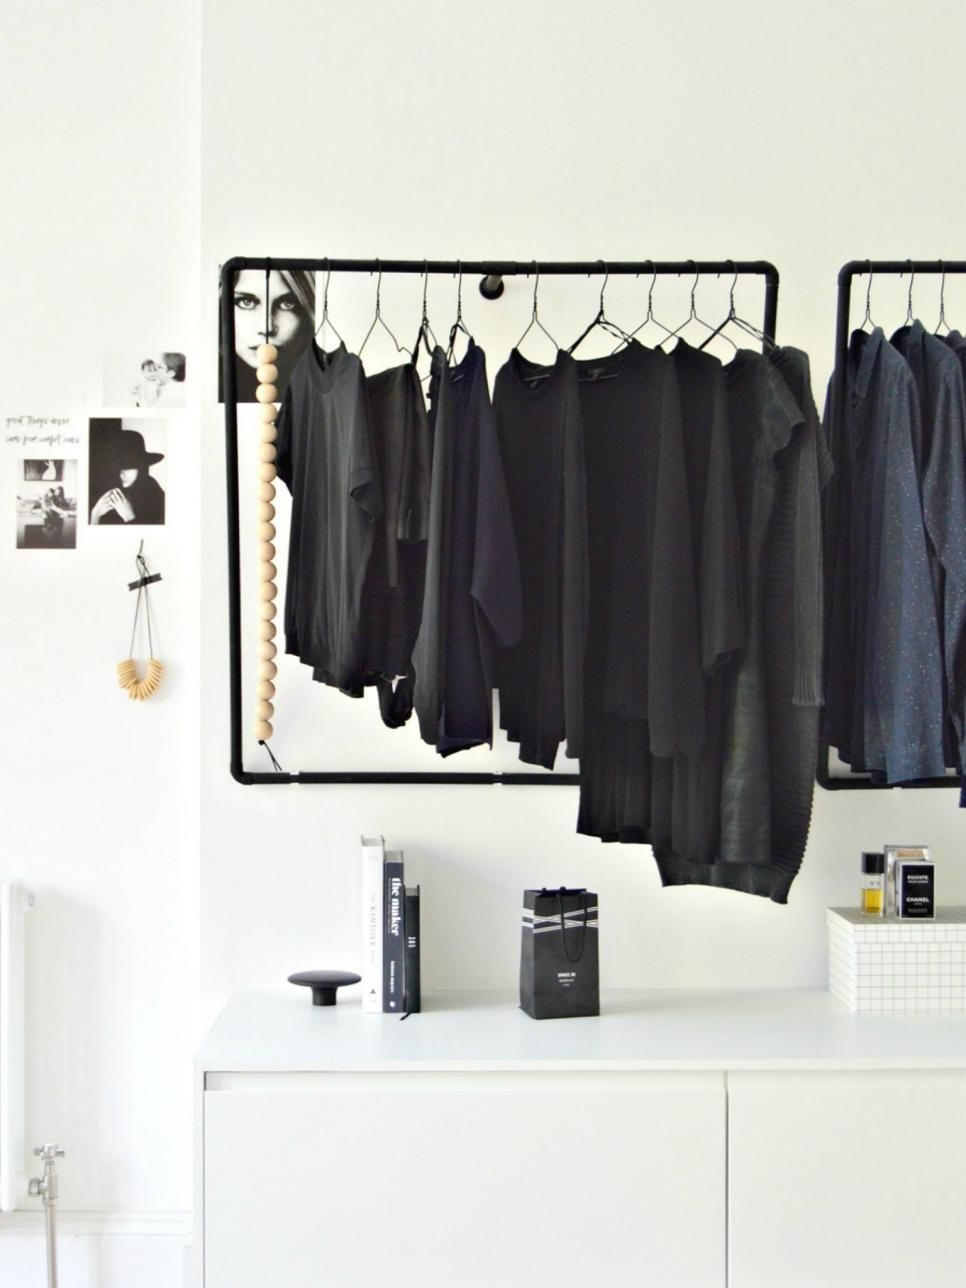 12 No Closet Clothes Storage Ideas